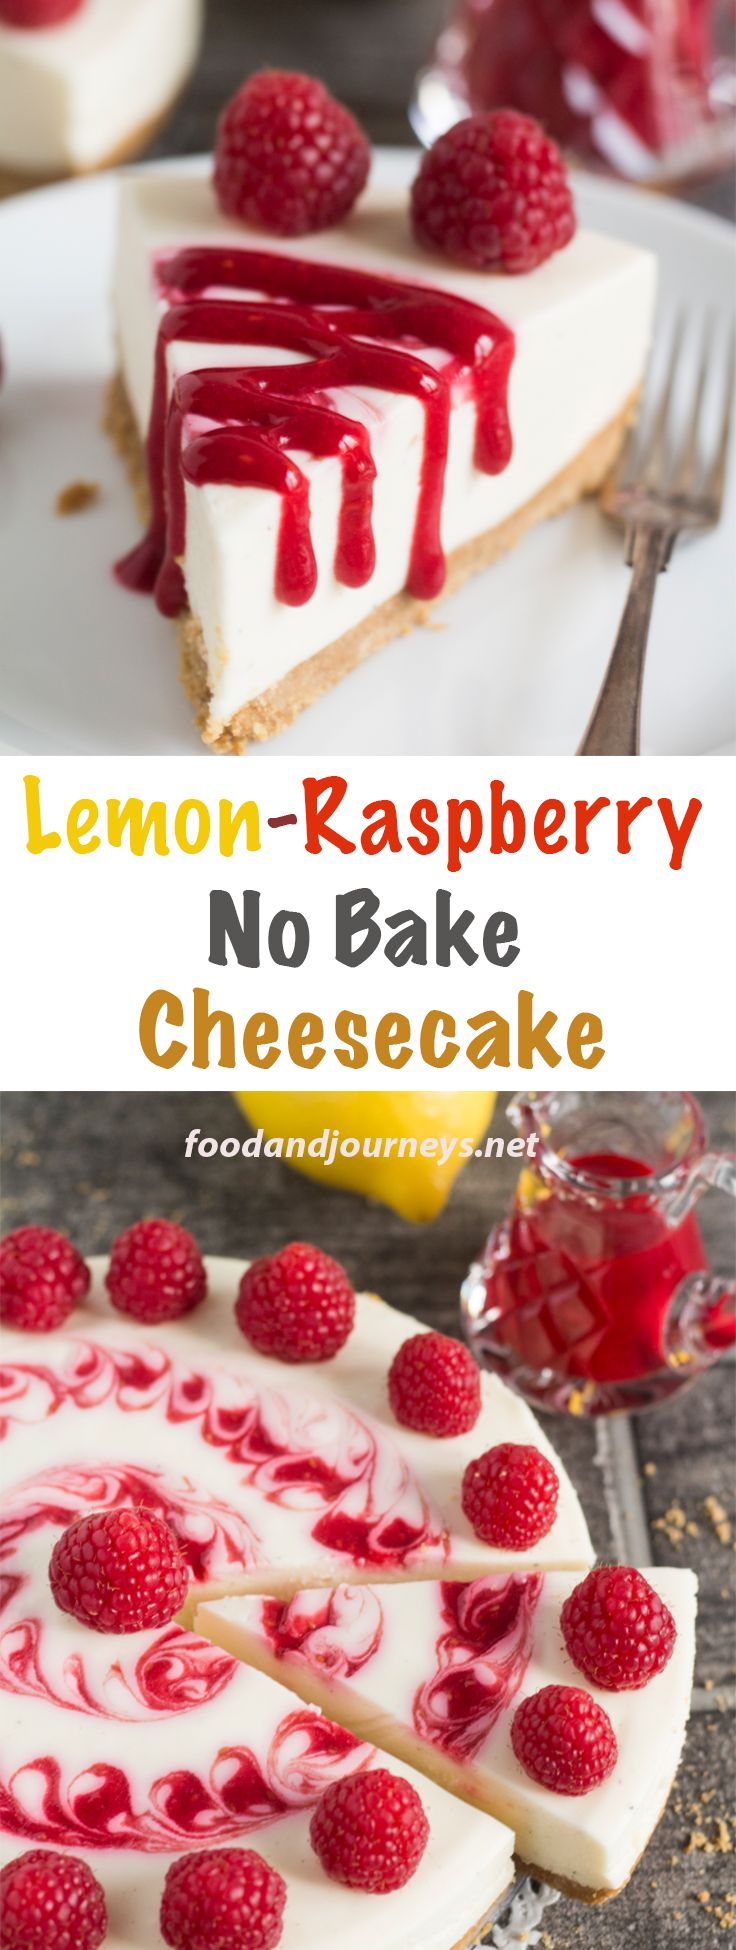 Creamy, sweet and tangy – that's what you get in every scrumptious bite of Lemon-Raspberry No Bake Cheesecake! No need to wait for summer to prepare this treat! Have a slice for snack, dessert or breakfast! No bake Dessert | Cheesecake | Summer Dessert. #nobake #cheesecake #dessert #easydesserts #raspberry